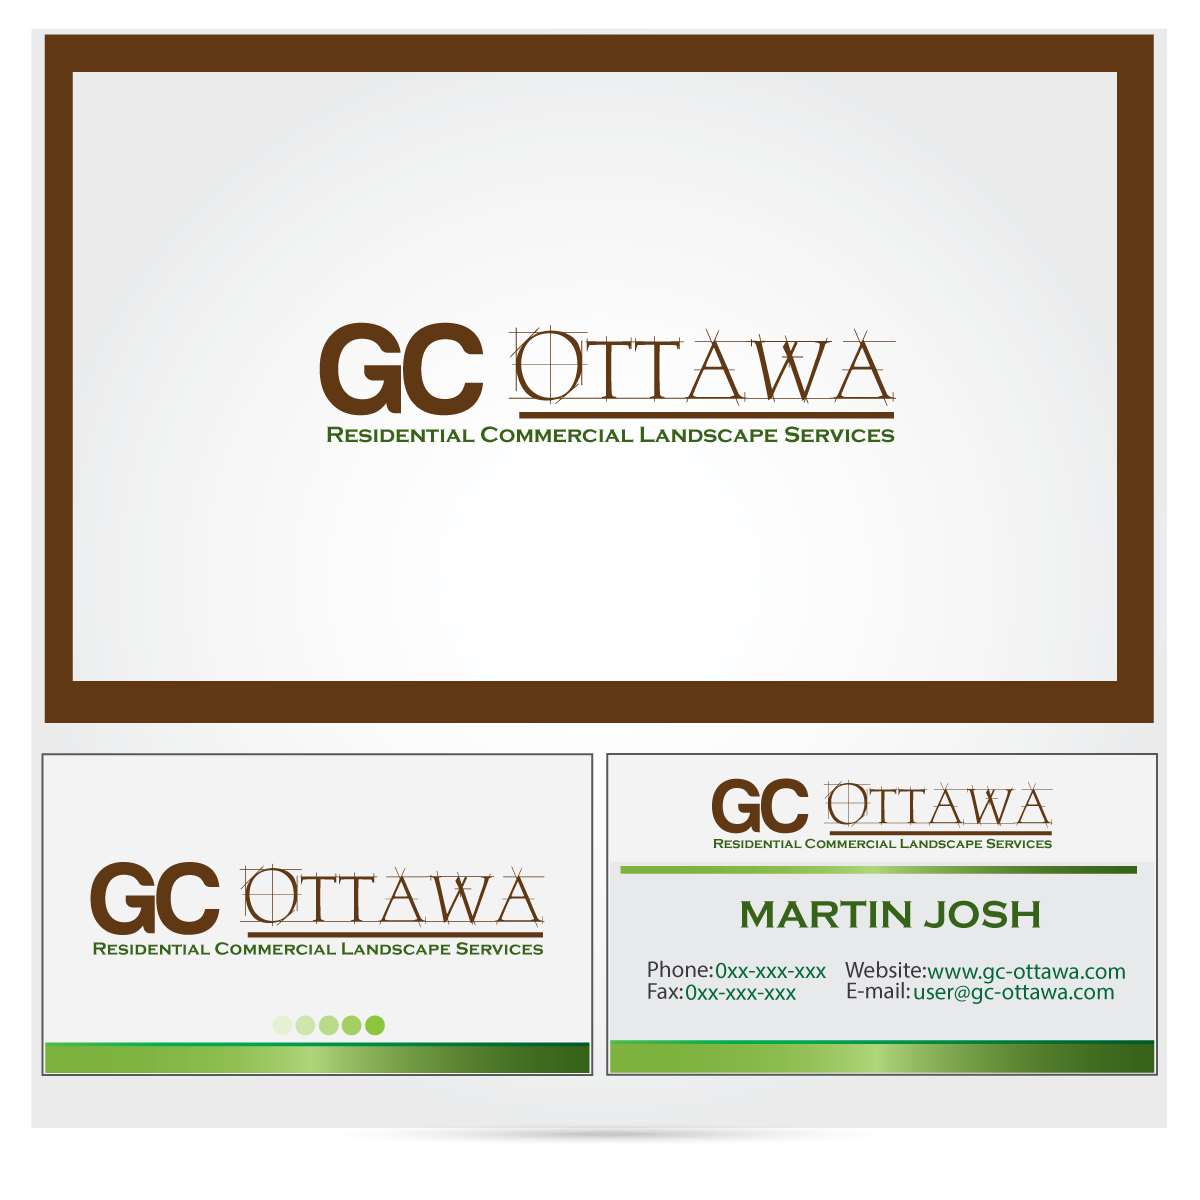 New logo wanted for GC Ottawa